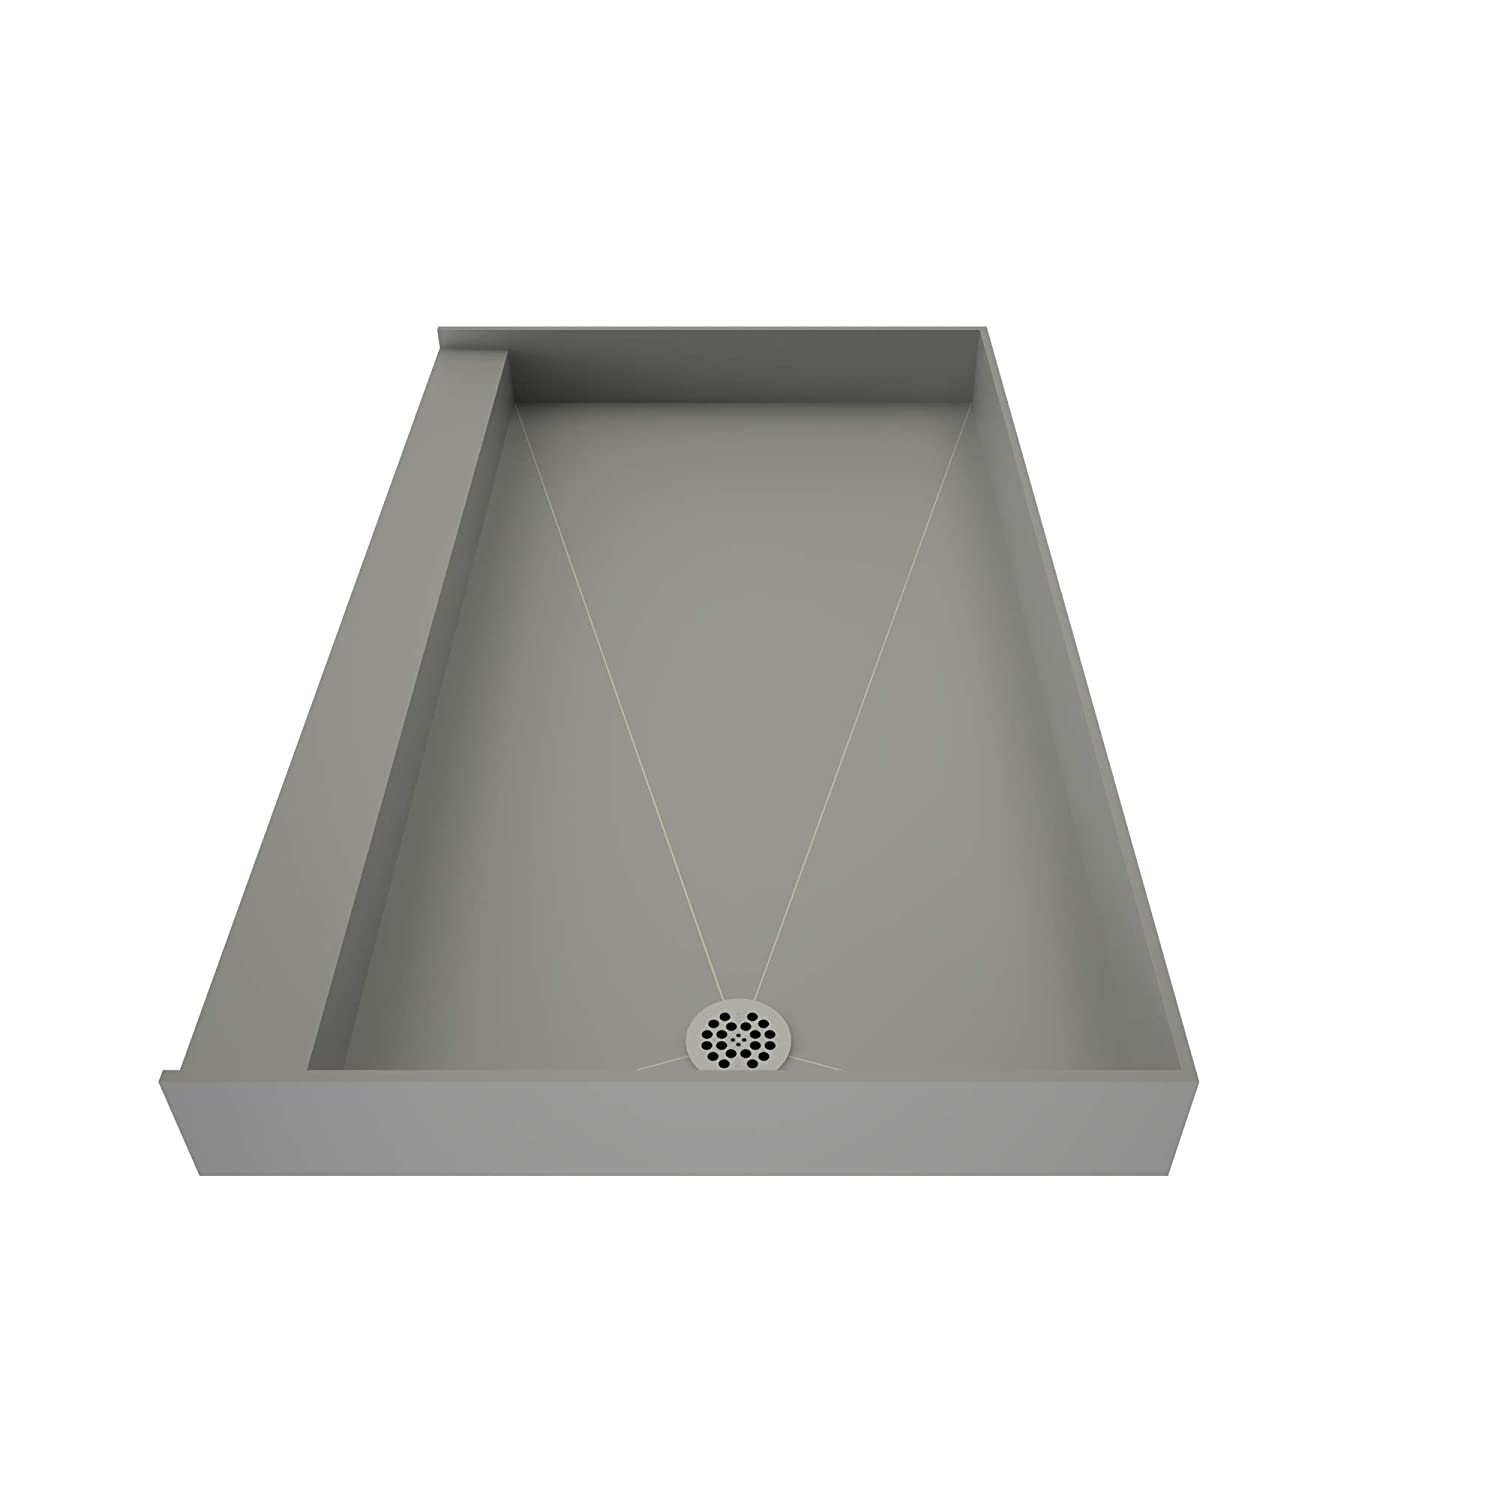 Tile Redi 3060Rbo Shower Pan with Integrated Right Hand Side Pvc ...